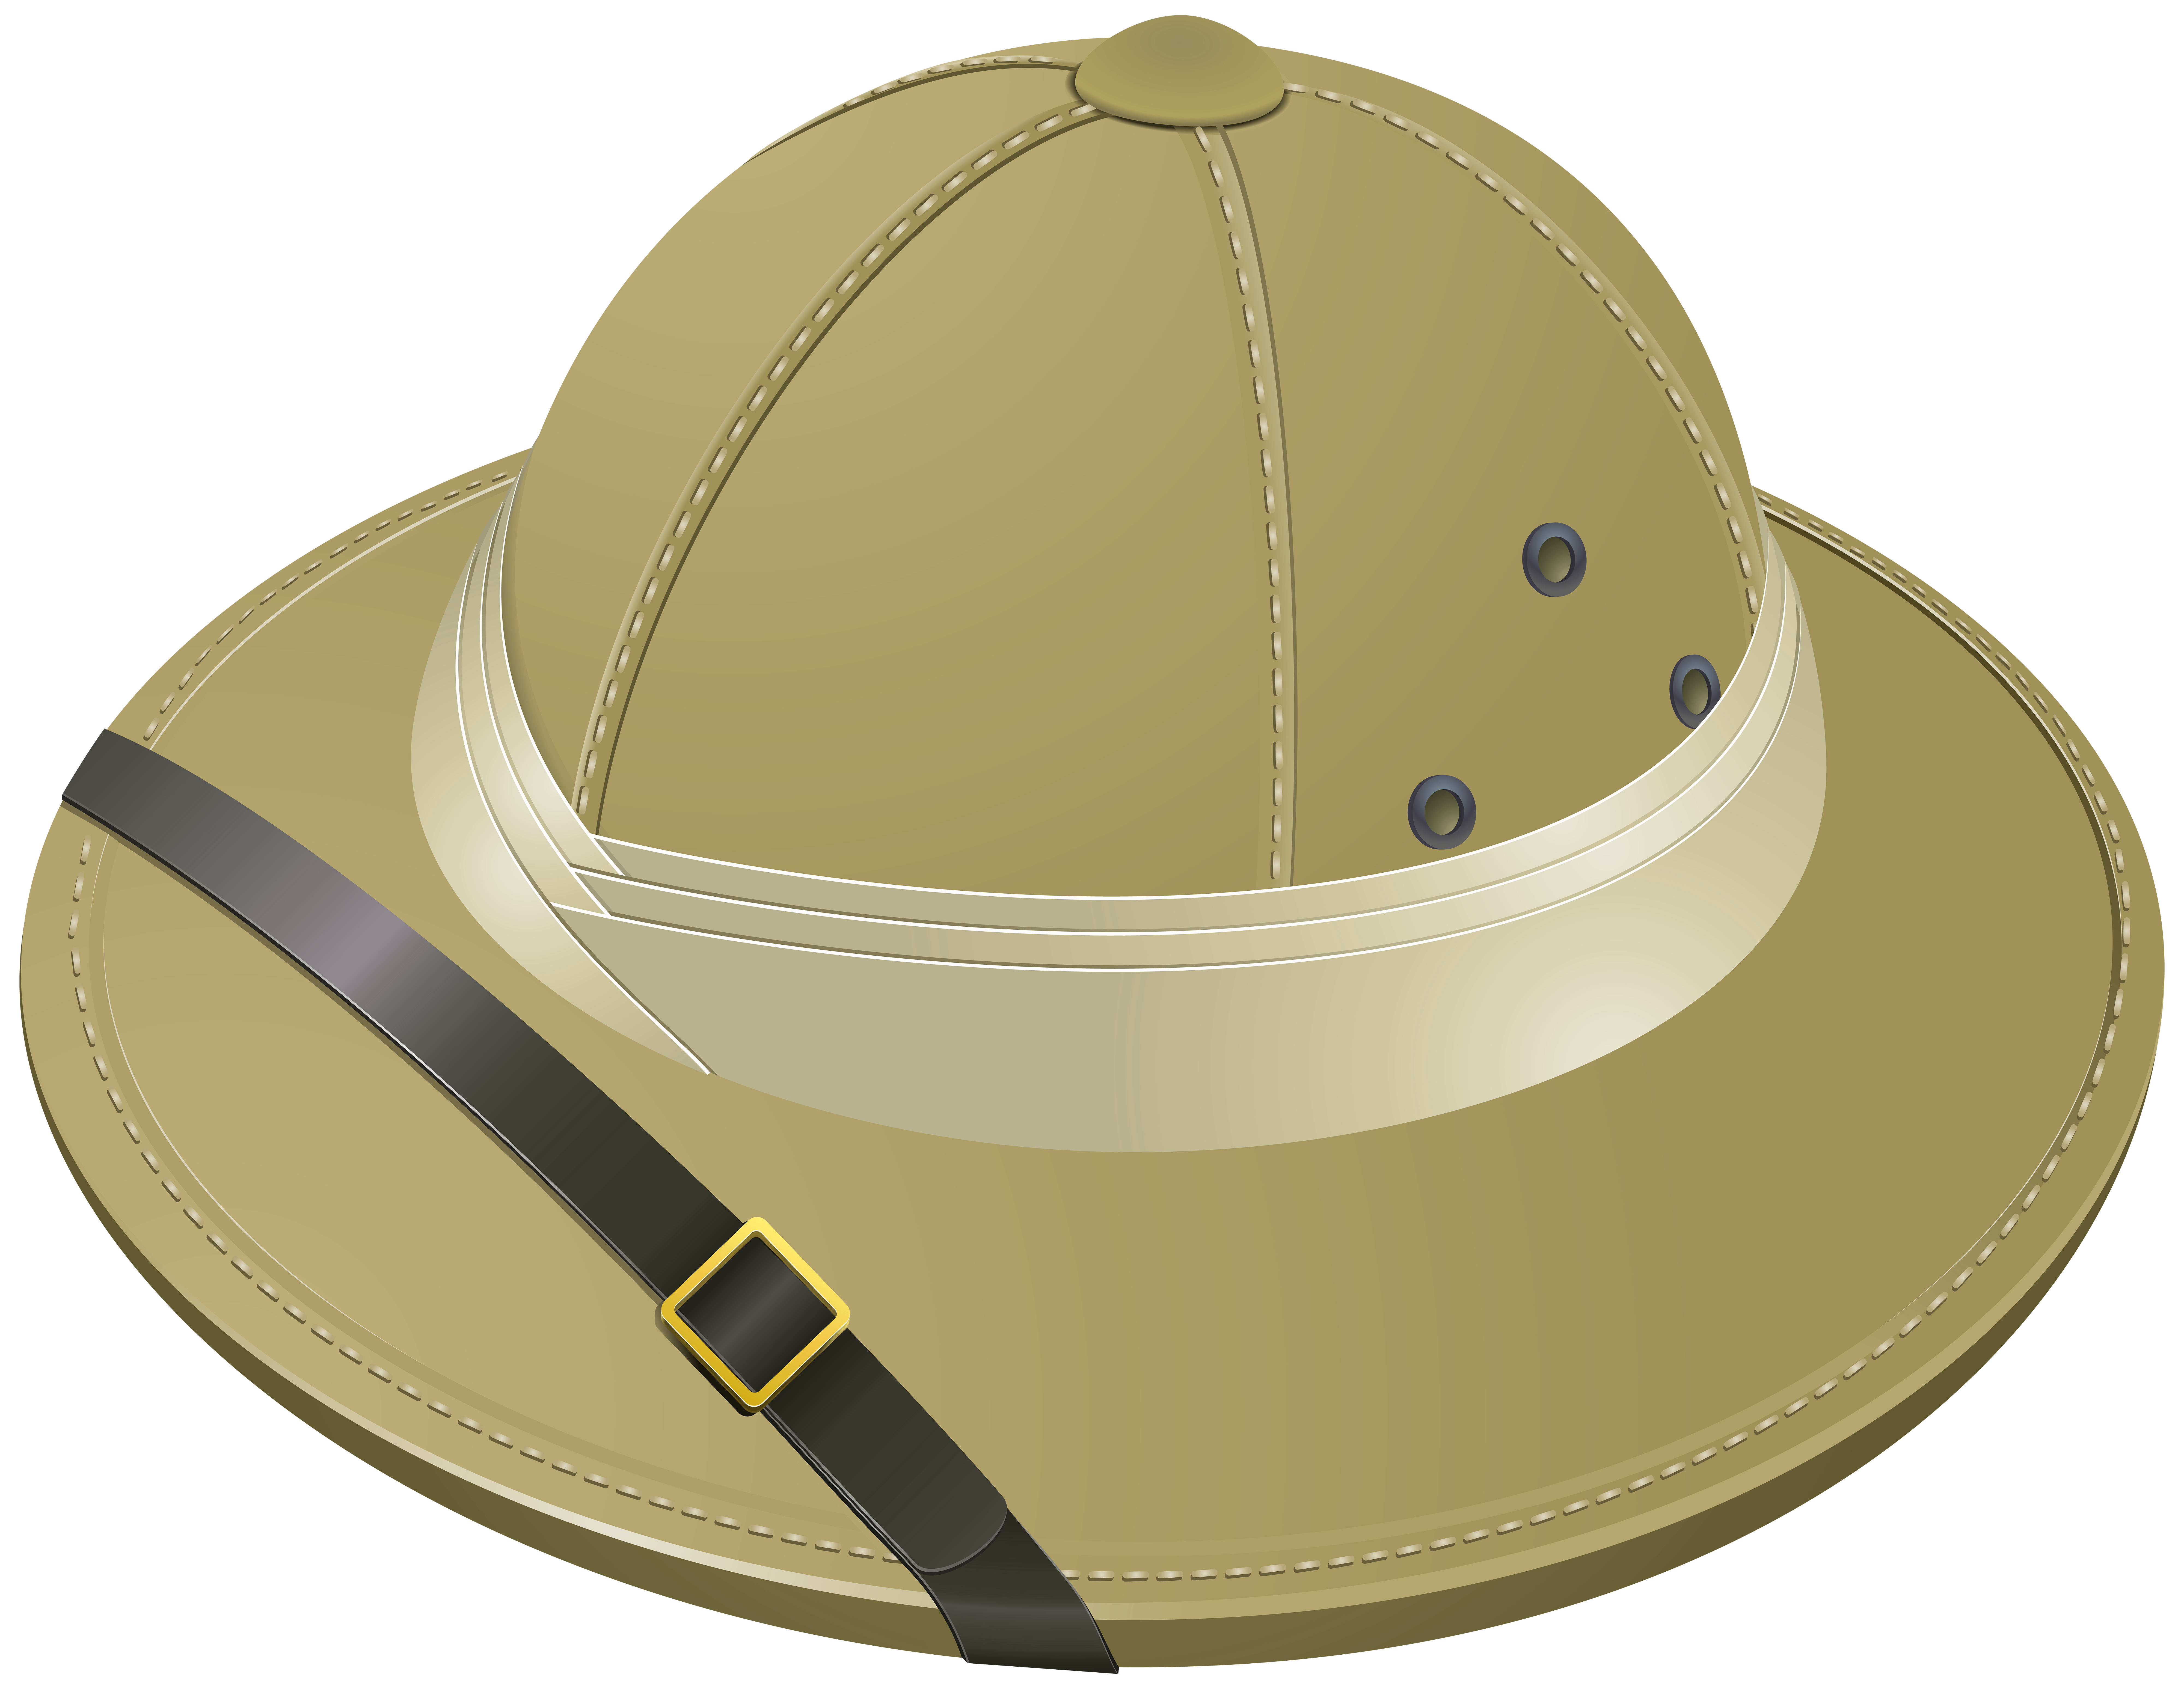 Pith helmet clipart vector freeuse Pith Helmet Transparent PNG Clip Art Image   Gallery ... vector freeuse